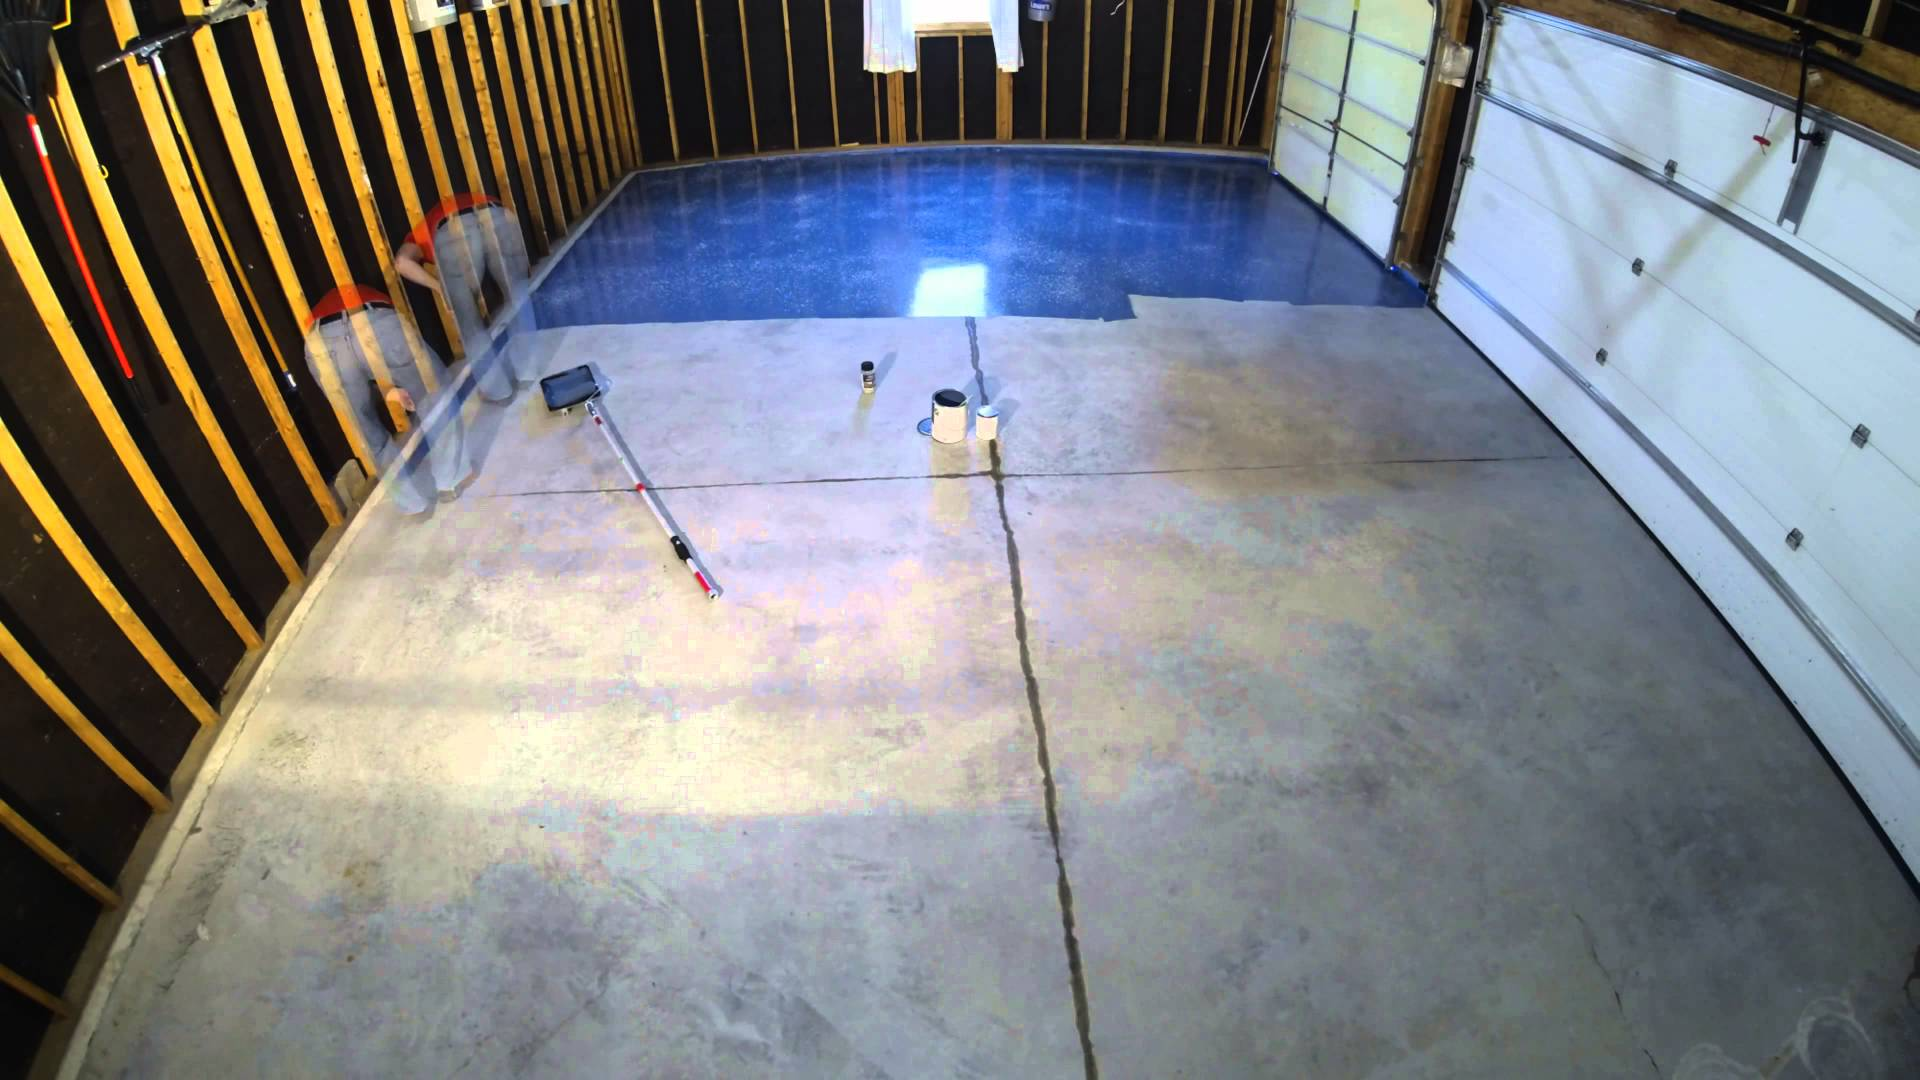 Most people don't just want a plain, matte concrete floor for their garage. Luckily there are a wide array of choices! Whether you go with a durable epoxy coating, opt for rubber mats, go with hardwood flooring, or carpeting (for conversions), or even an acid stain, your garage floor can really define your garage style